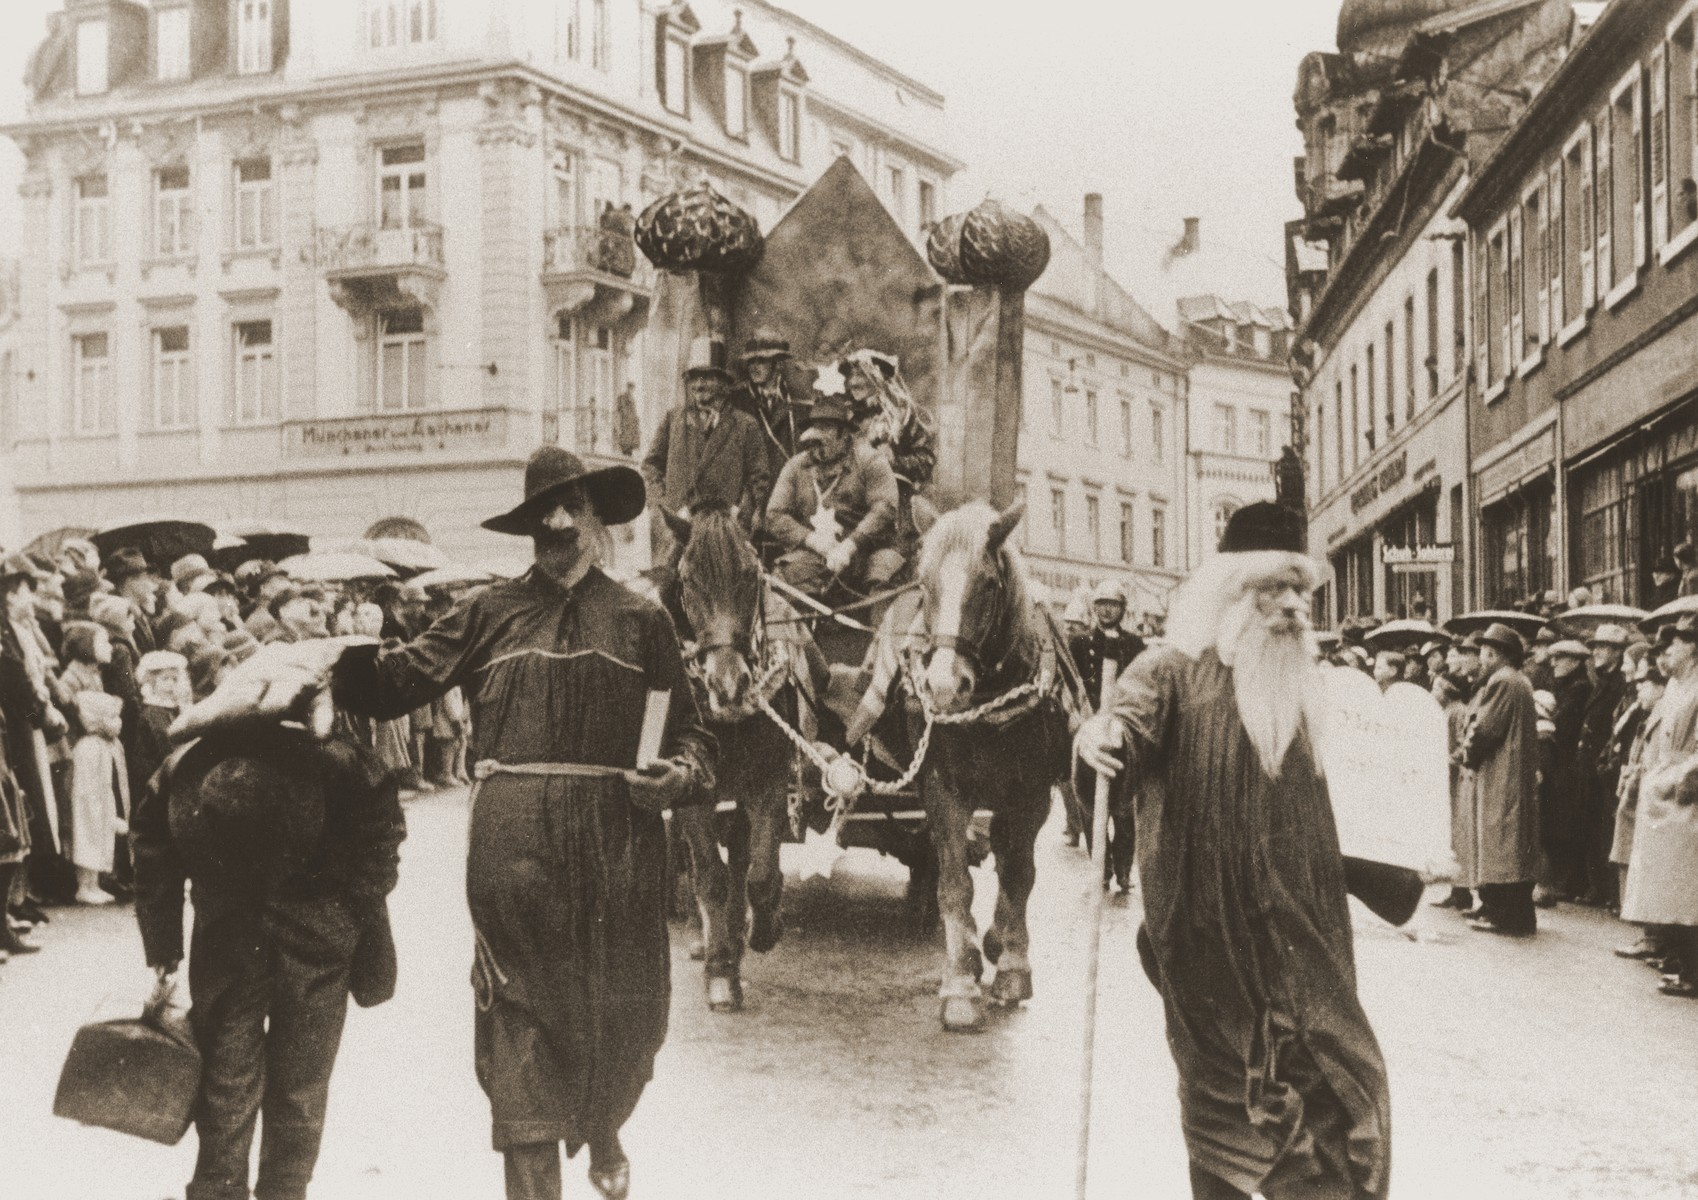 A troupe of actors in a carnival parade parodies Jewish life in Germany.  The float features a mock-up of a burning synagogue.